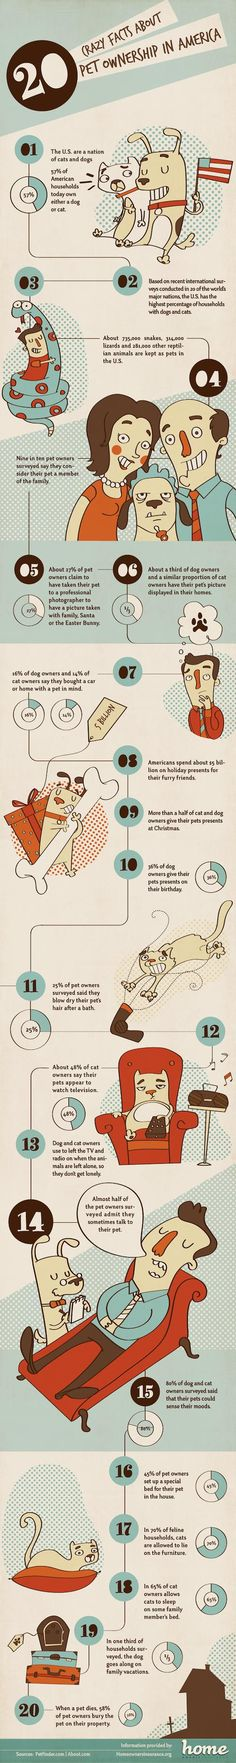 20 Crazy Facts About Pet Ownership in America  http://www.petbloglady.com/2013/03/infographics-about-pets-a-fun-way-to-see-the-facts.html